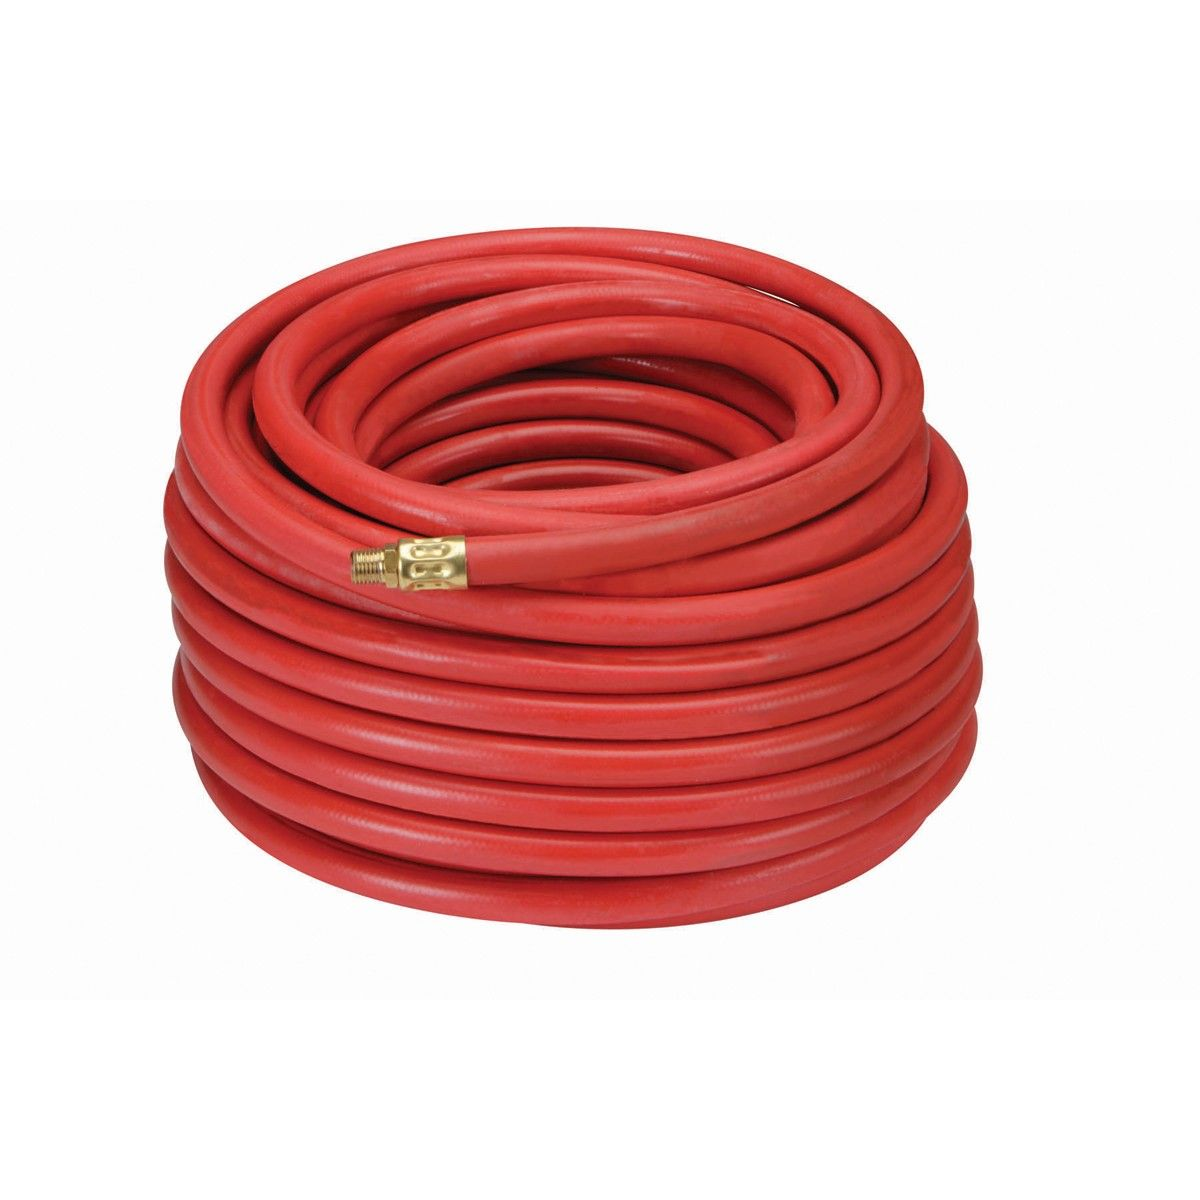 3 8 In X 100 Ft Rubber Air Hose Flexibility Radiator Hose